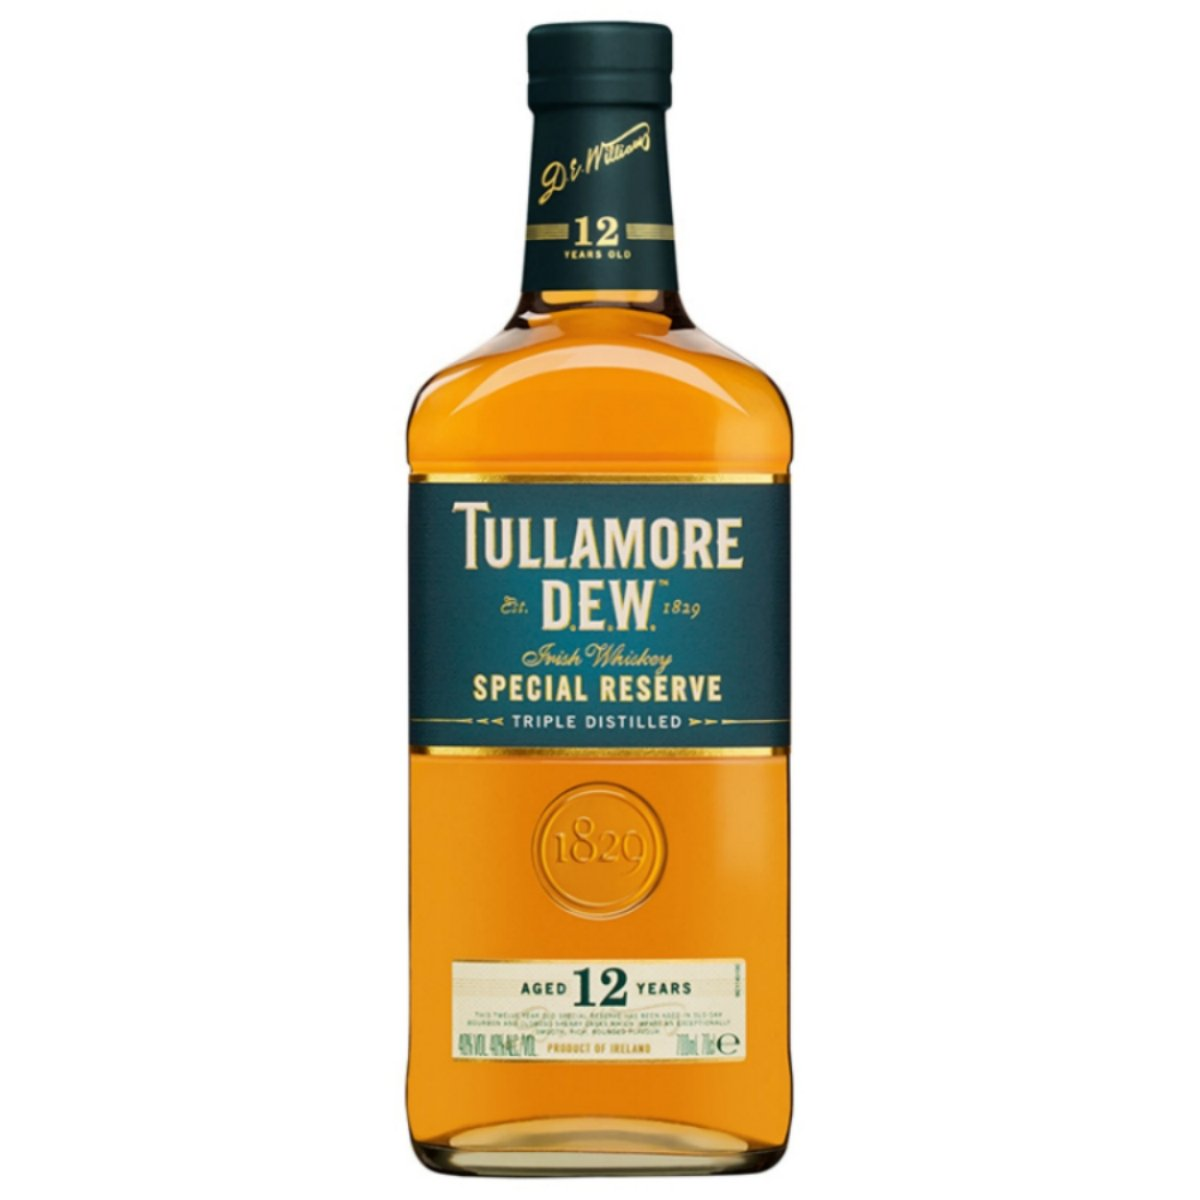 tullamore dew 12 year old irish whiskey 700ml. Black Bedroom Furniture Sets. Home Design Ideas